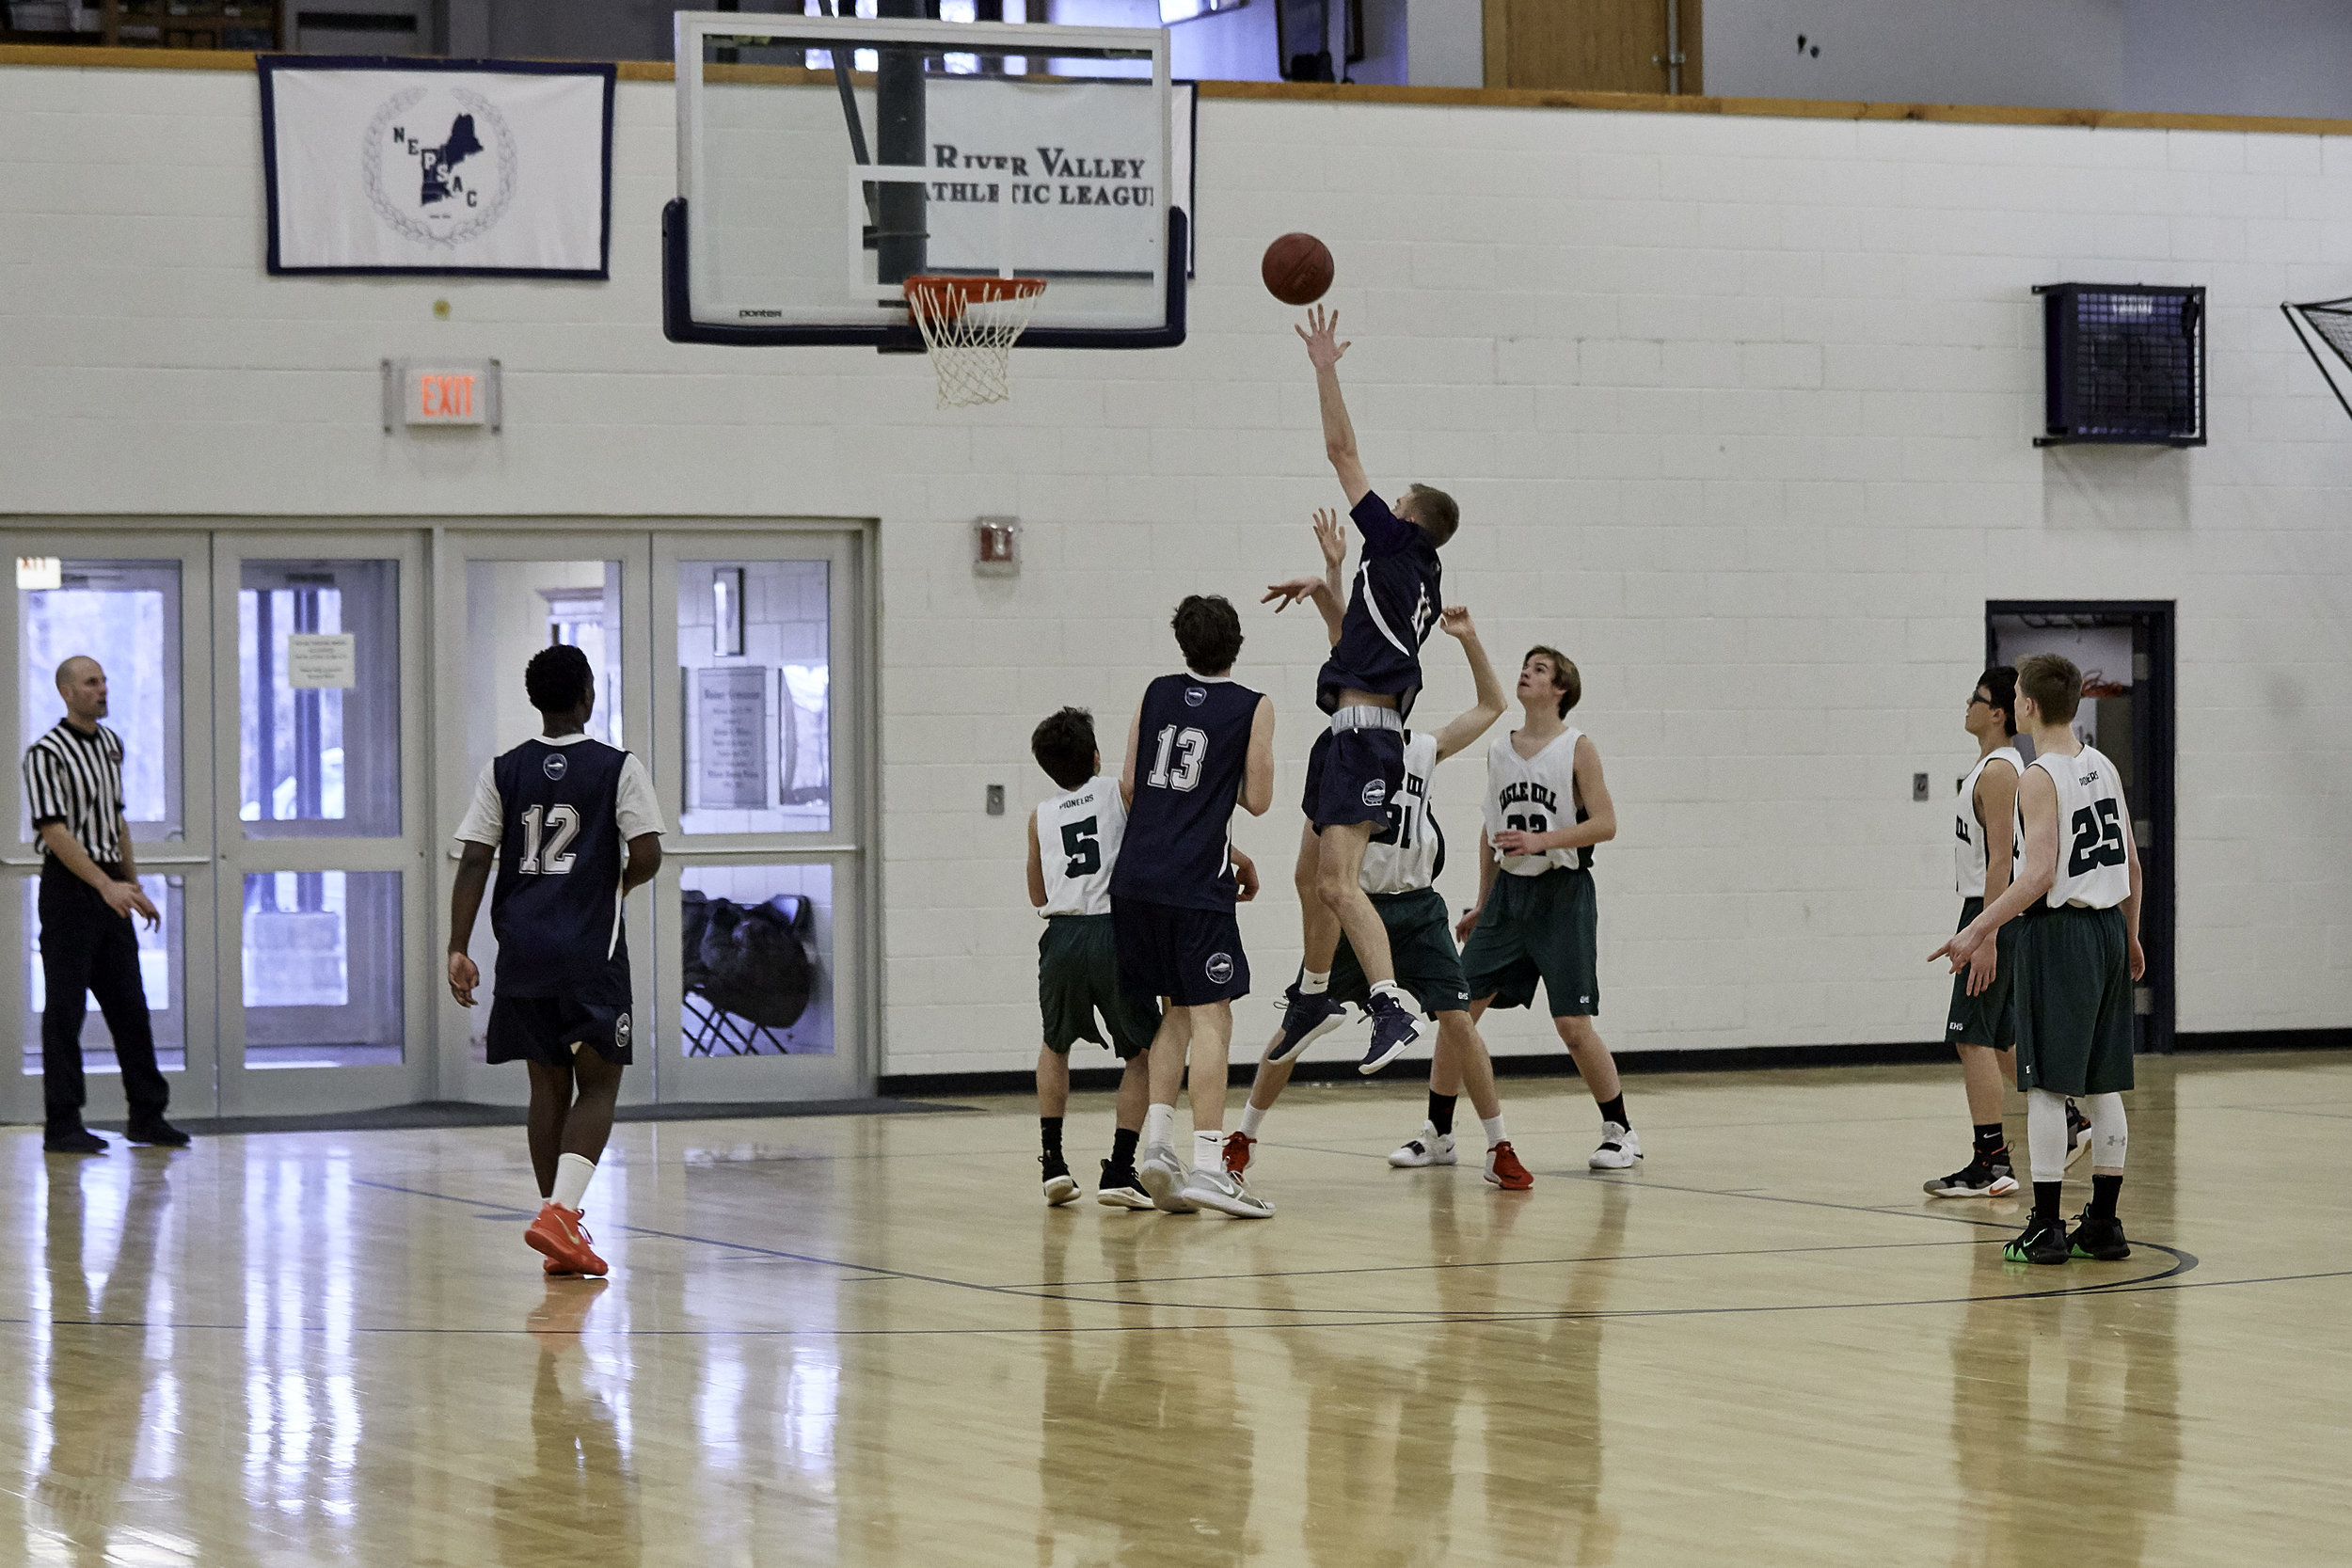 Boys Varsity Basketball vs. Eagle Hill School JV at RVAL Tournament - February 11, 2019 - 167920.jpg